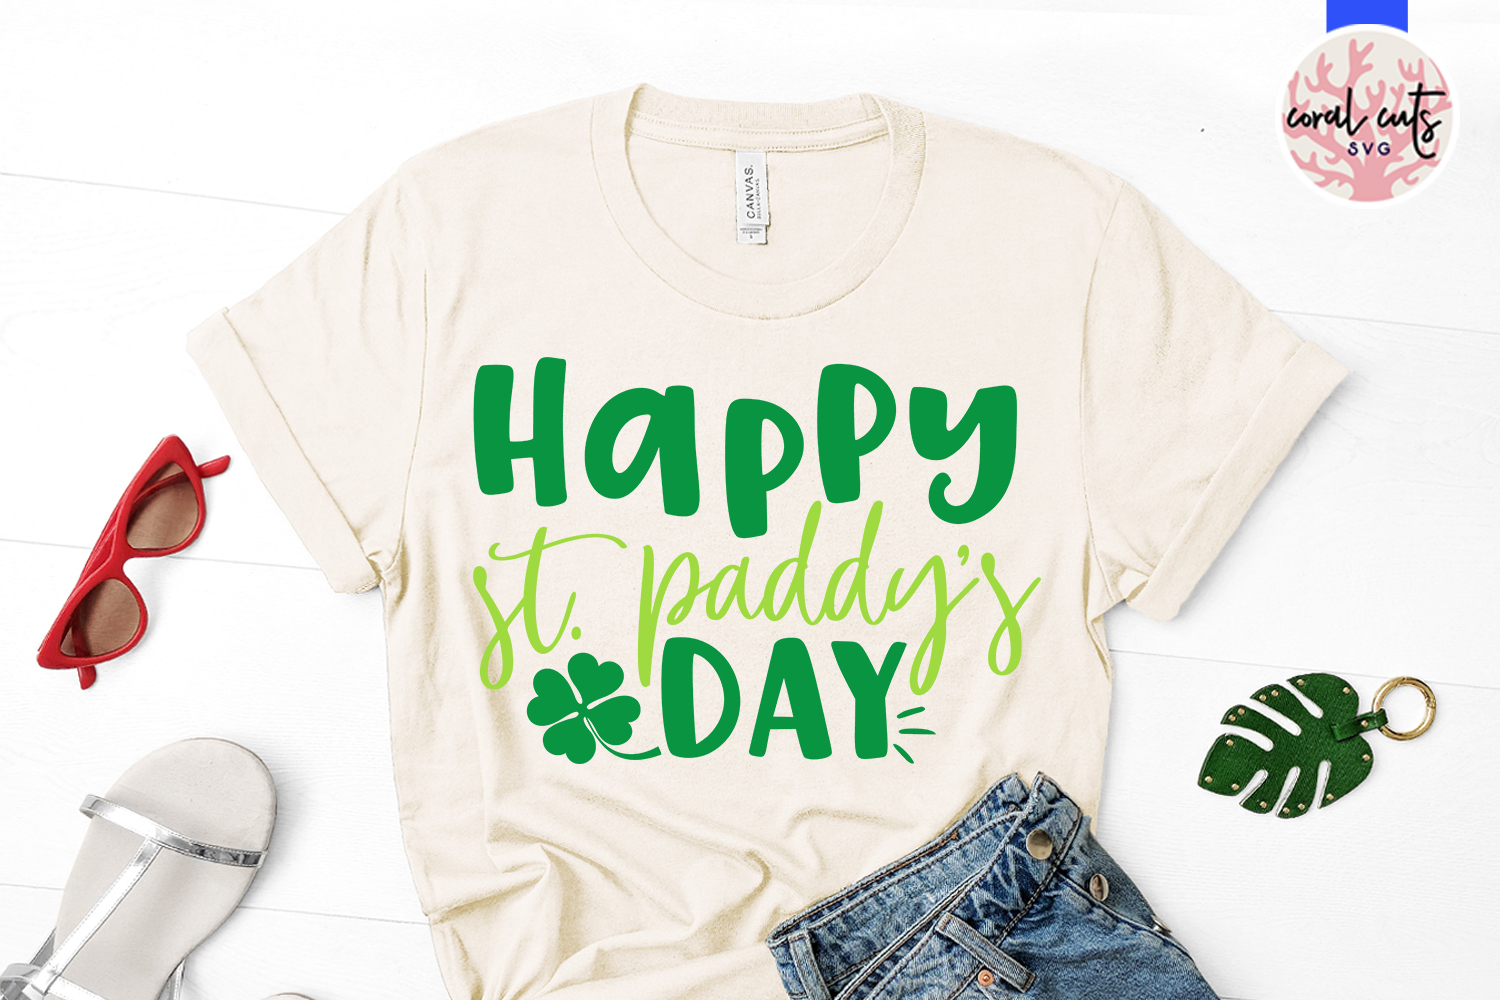 Happy st. patty's day - St. Patrick's Day SVG EPS DXF PNG example image 2